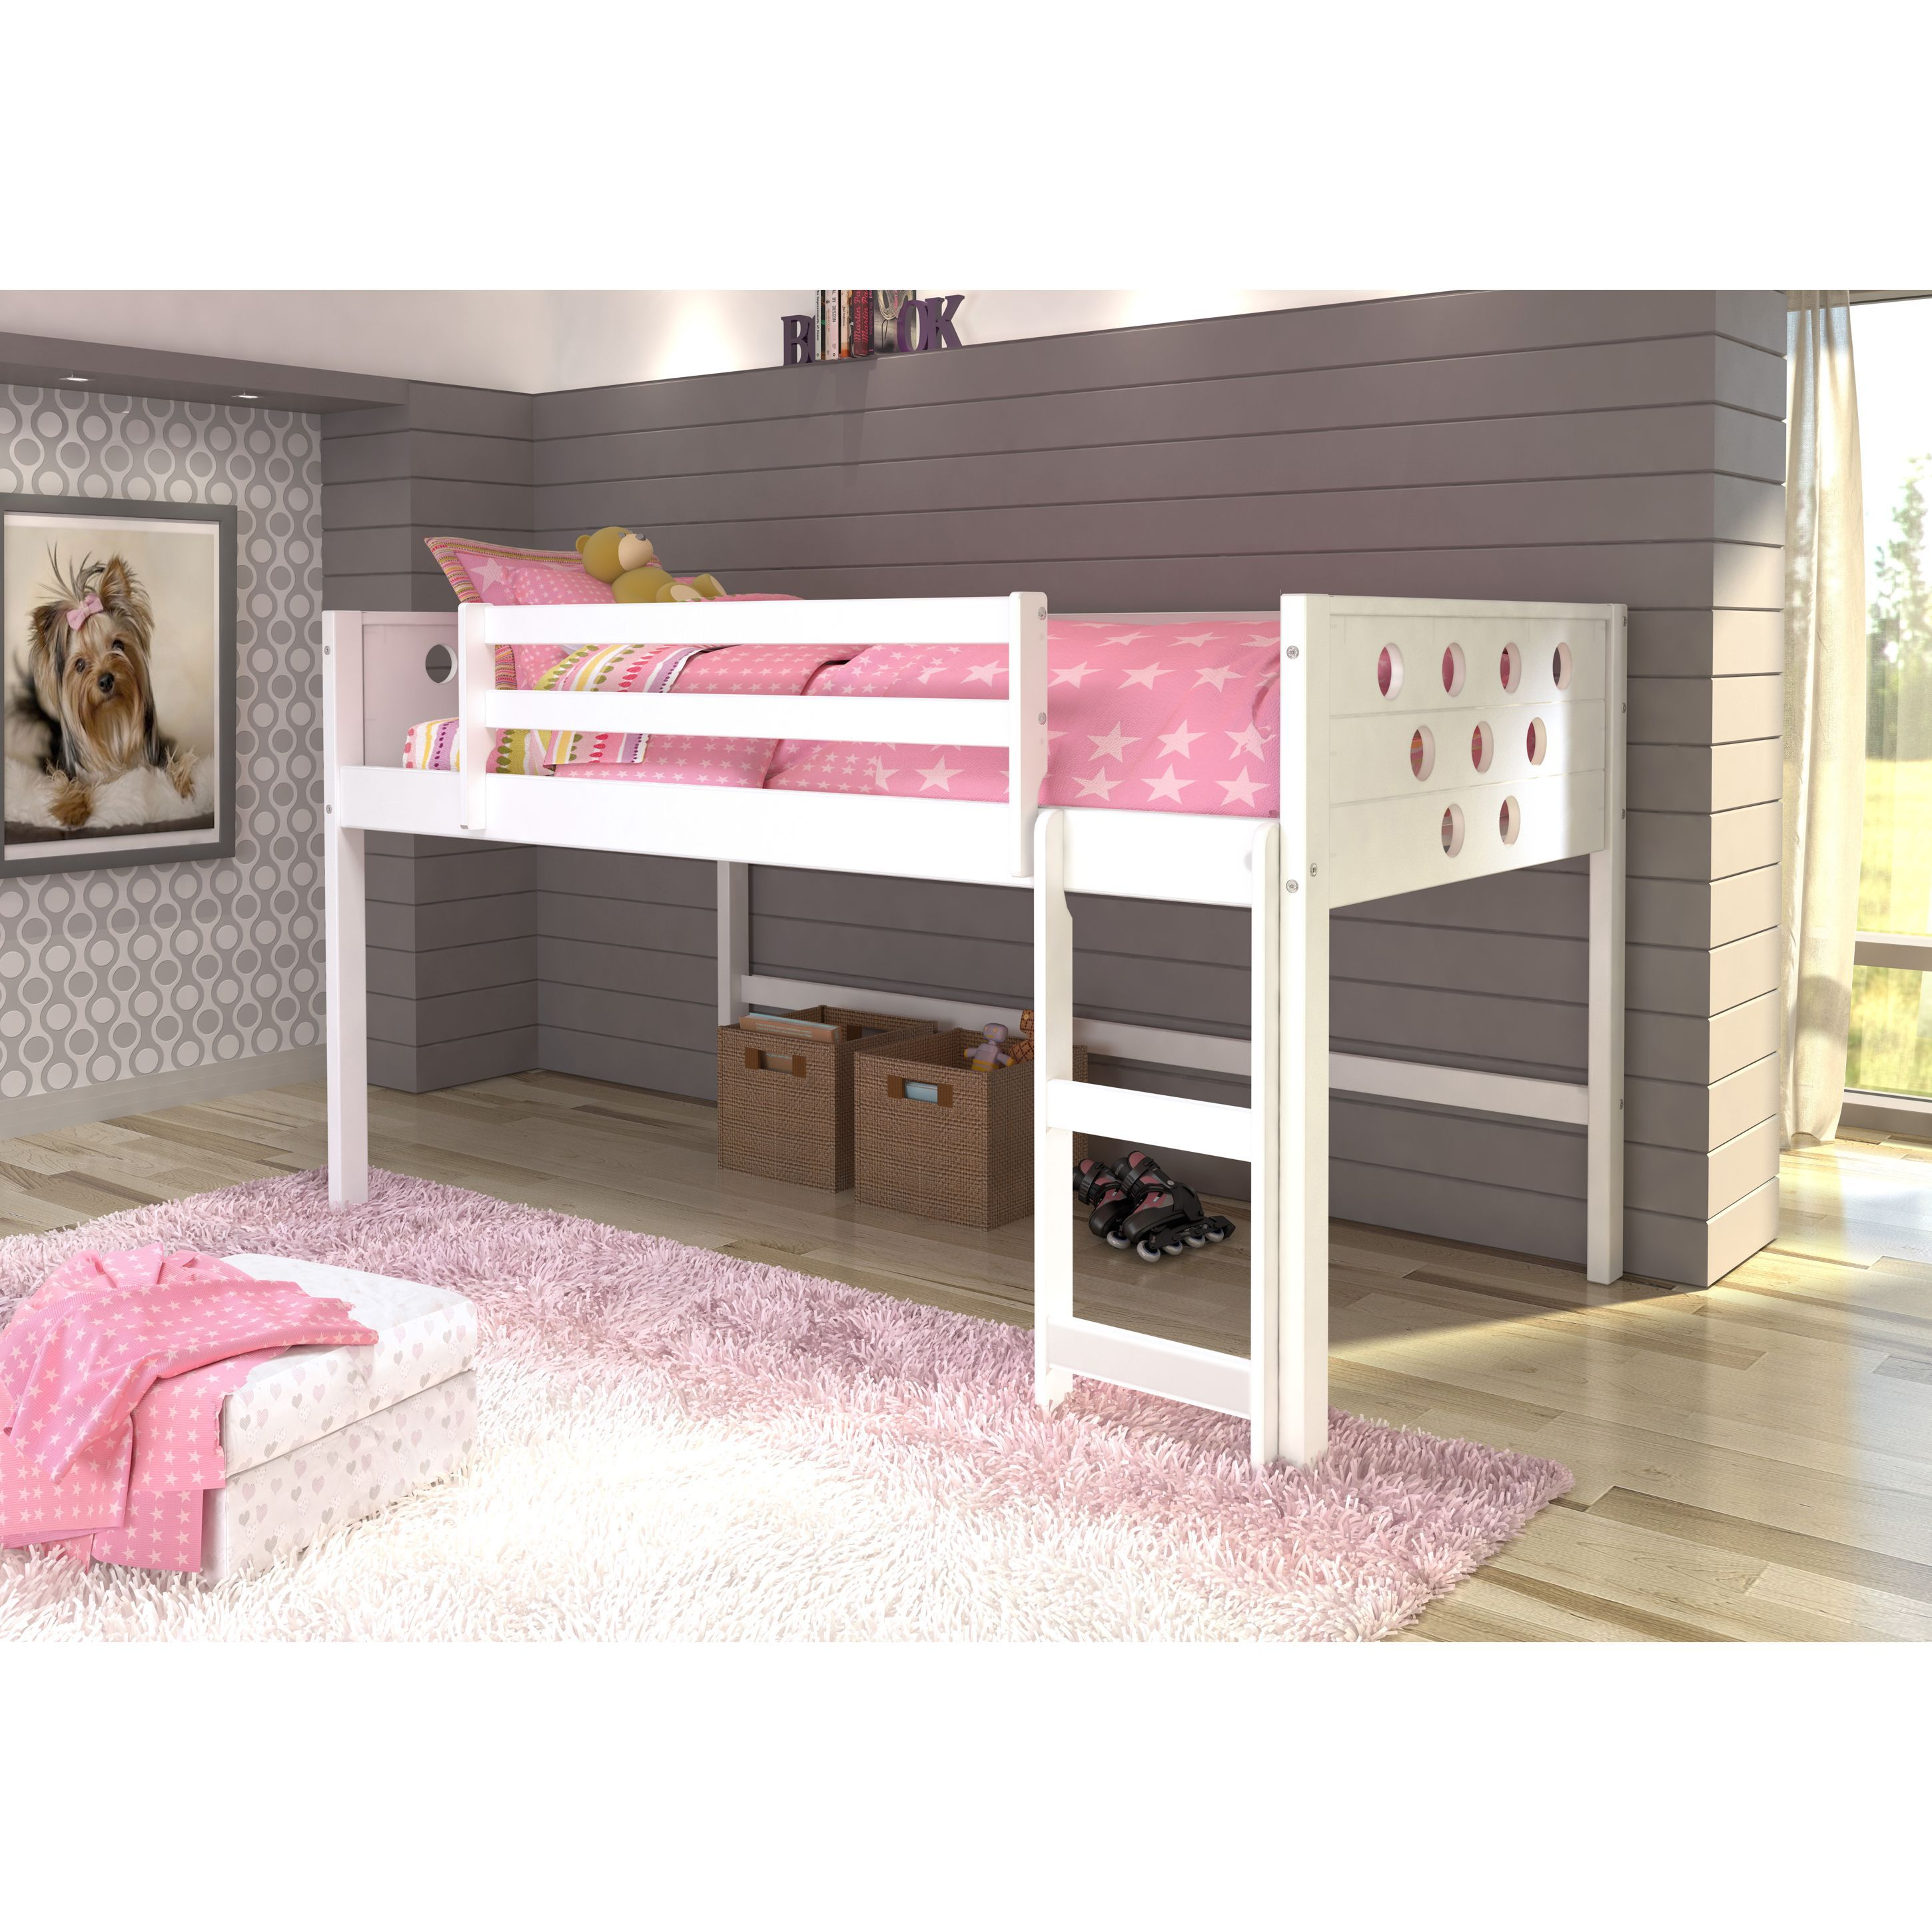 Kids low loft bed  Donco Kids Circles Low Loft Twin Bed Cappuccino  Cappuccino Finish